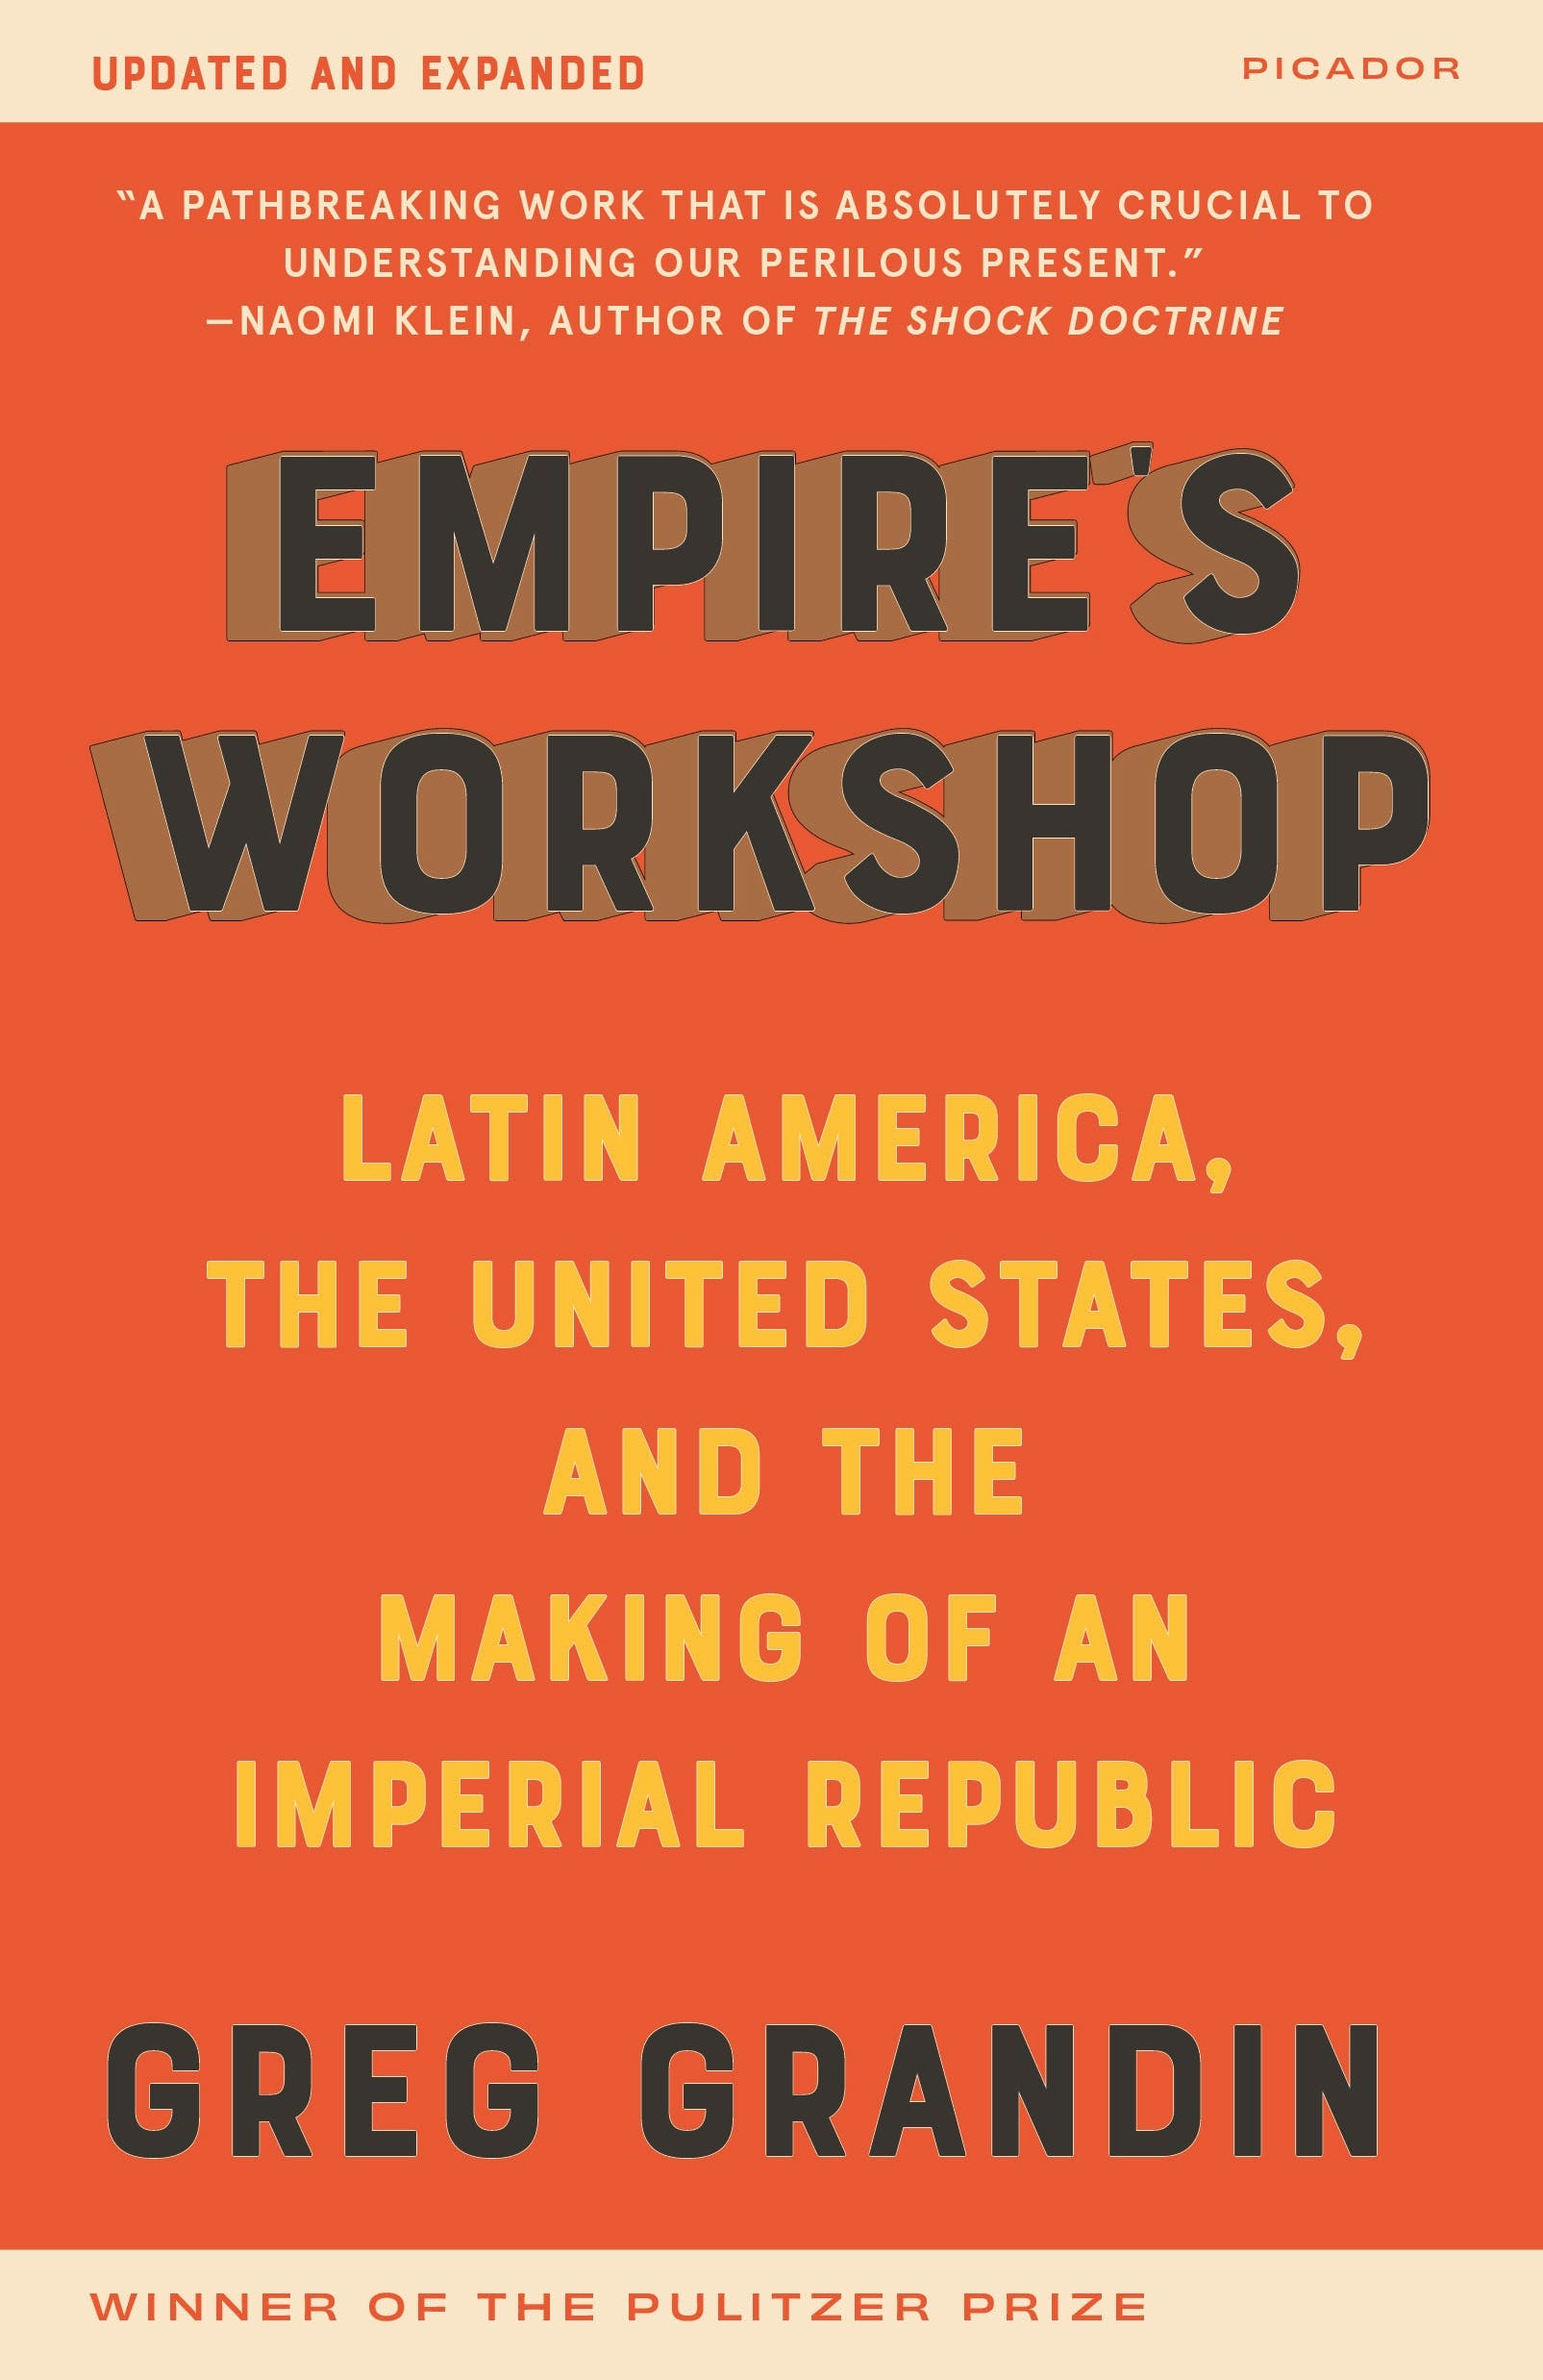 Image of Empire's Workshop (Updated and Expanded Edition)